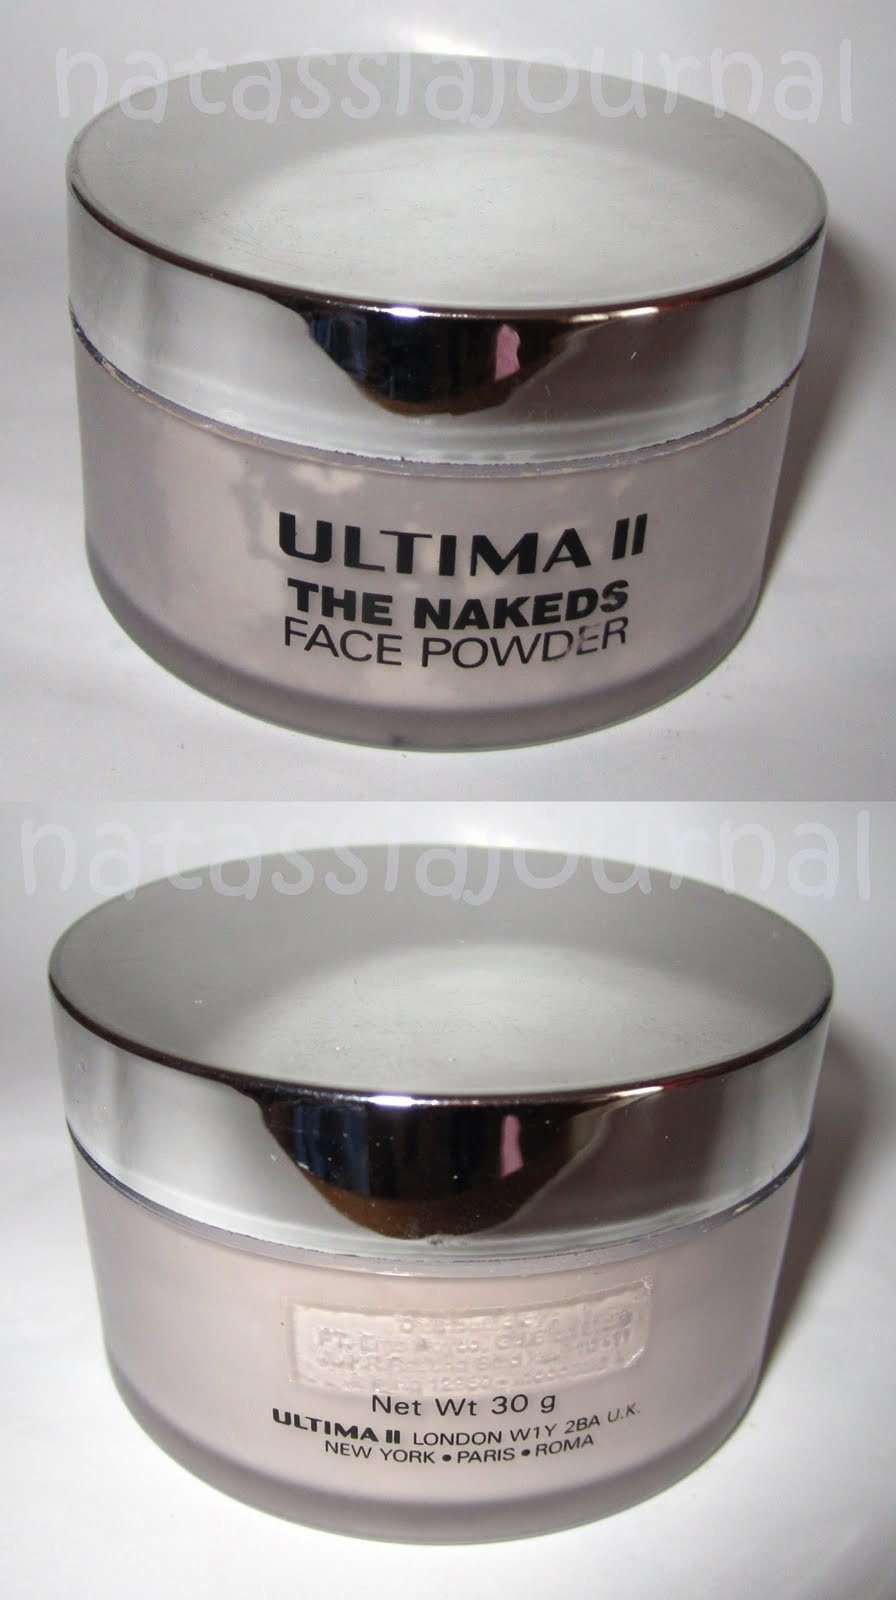 Natassia Journal Ultima II The Nakeds Face Powder